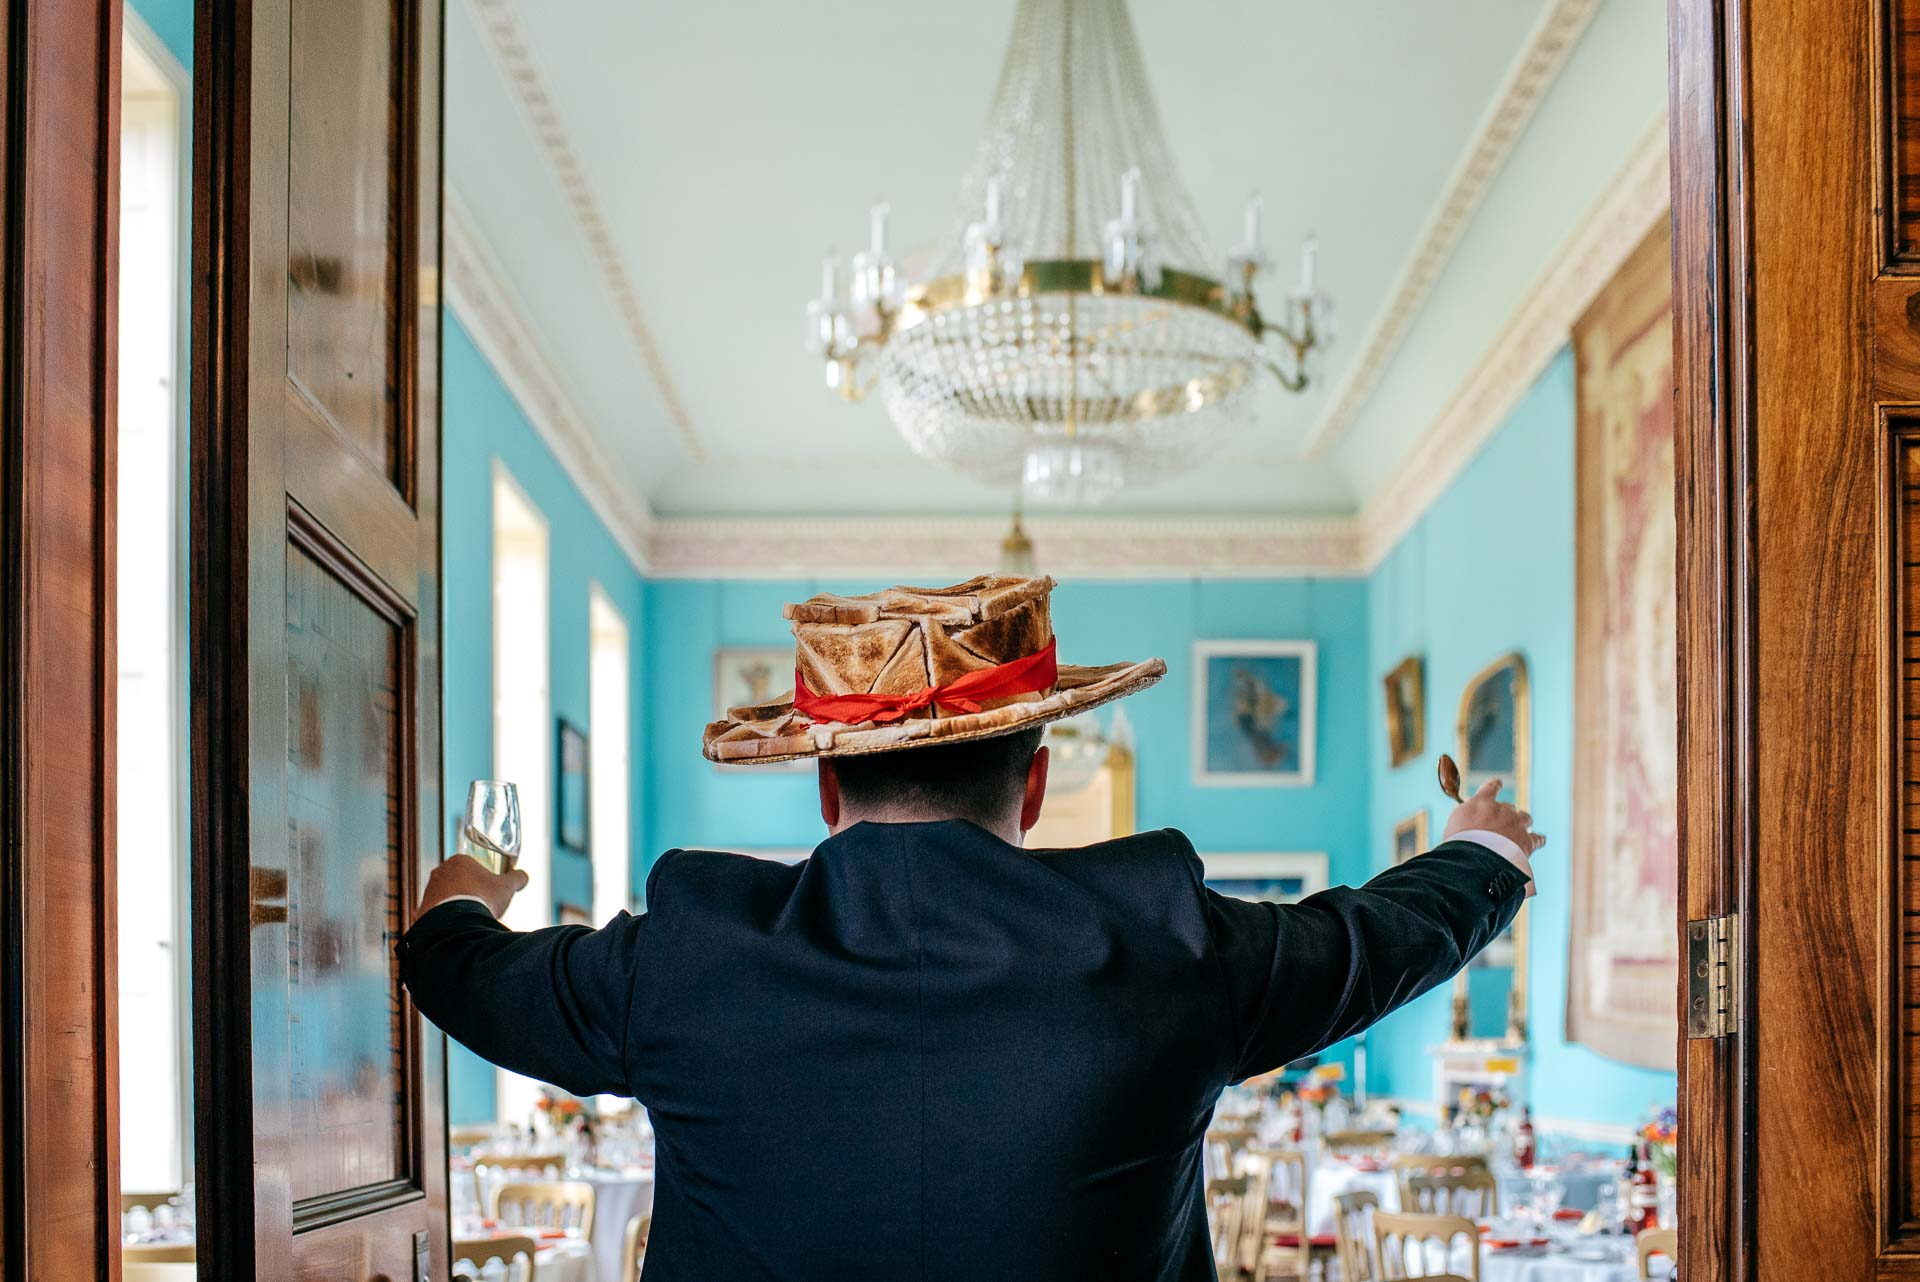 Toastmaster in a hat made of toast swings doors open of Walcot Hall to announce guests into the room